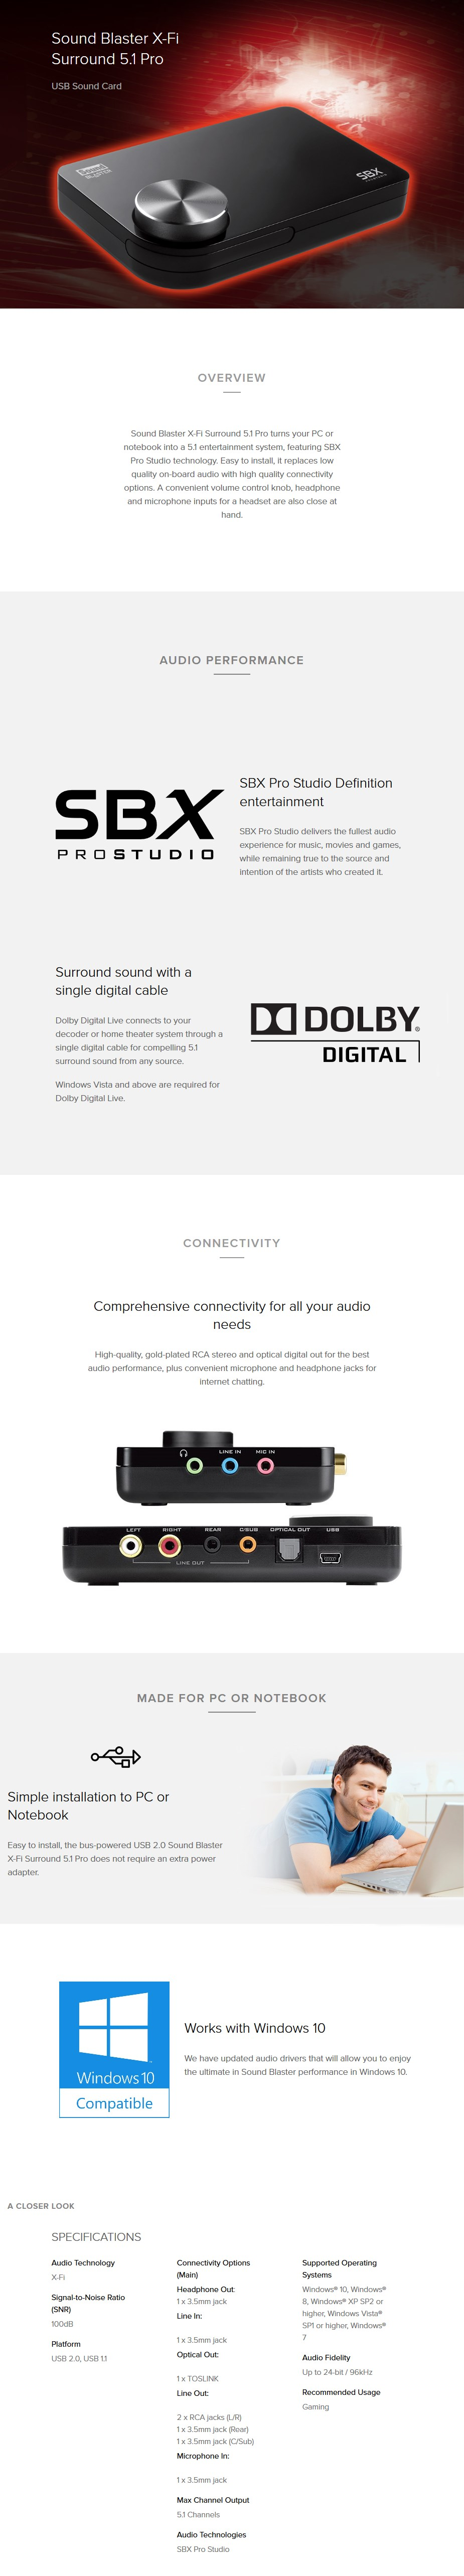 Creative Sound Blaster X-Fi Surround 5.1 Pro v3 USB Sound Card - Desktop Overview 1